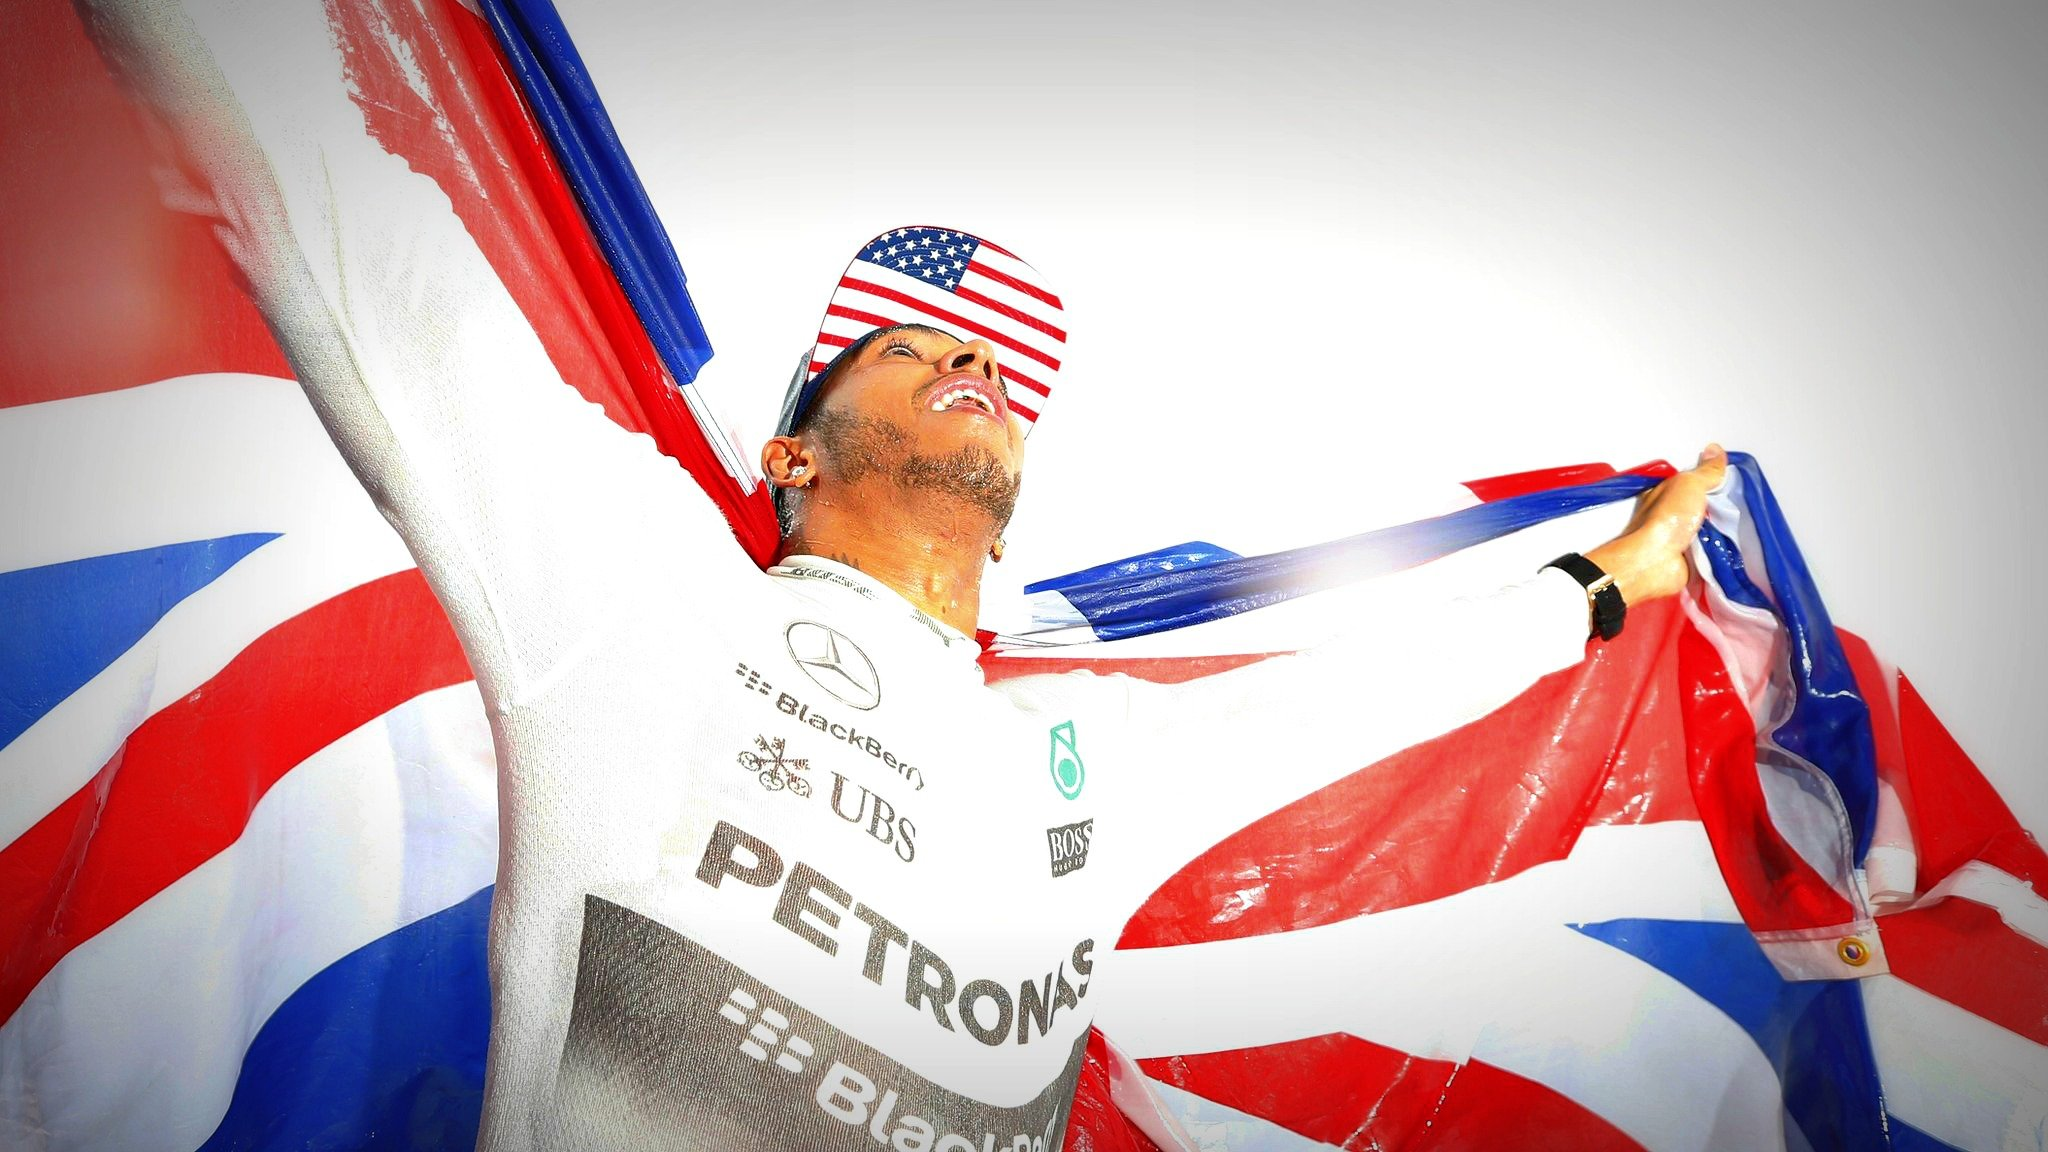 United States Grand Prix: Can Hamilton wrap up title at 'little jewel' Austin?